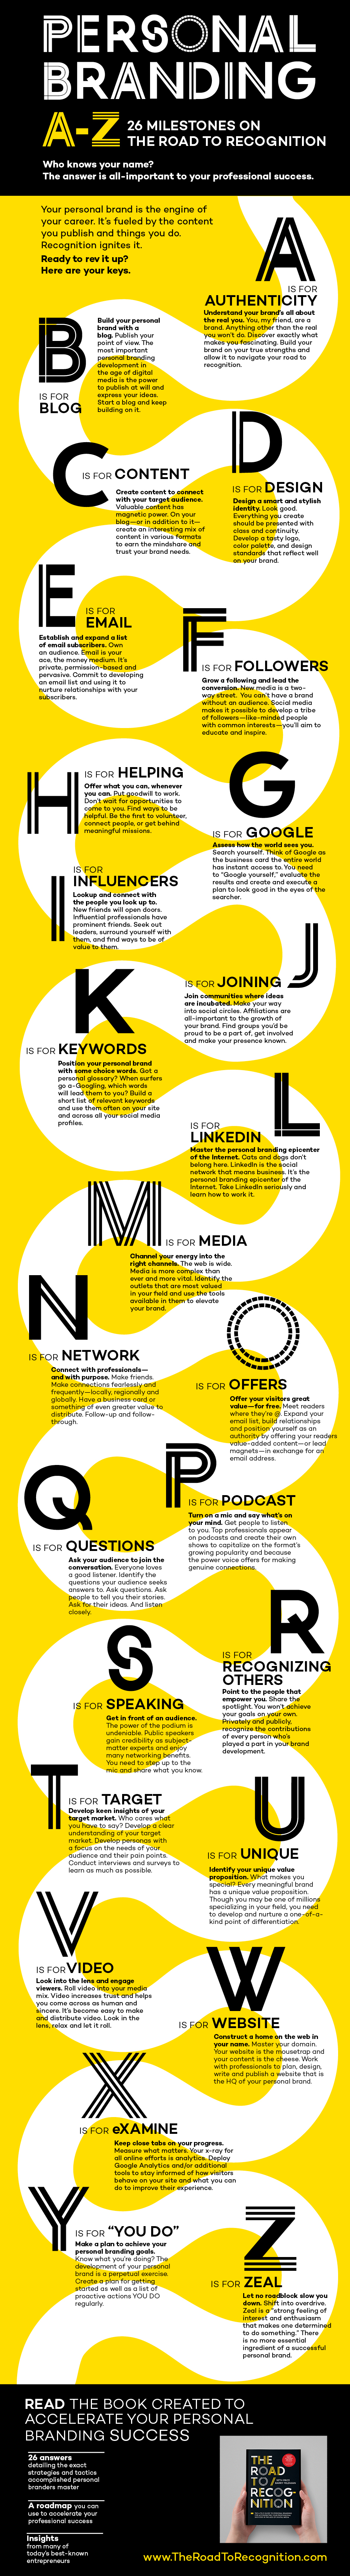 Personal Branding A to Z